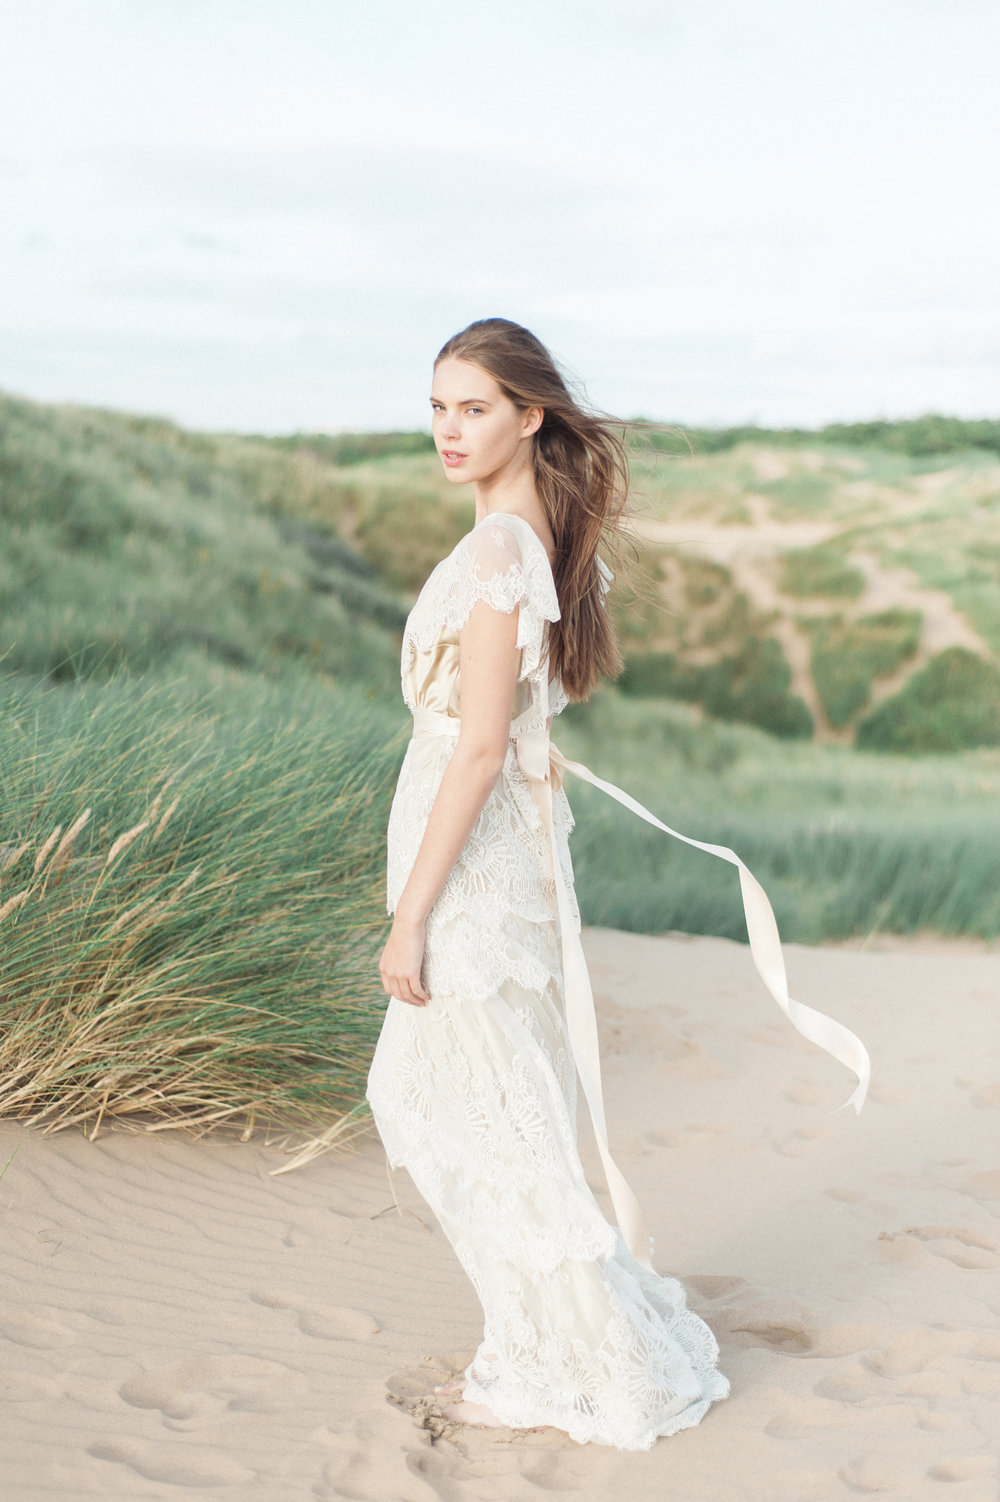 Kate-Beaumont-Wedding-Dresses-Formby-Beach-Emma-Pilkington-22.jpg